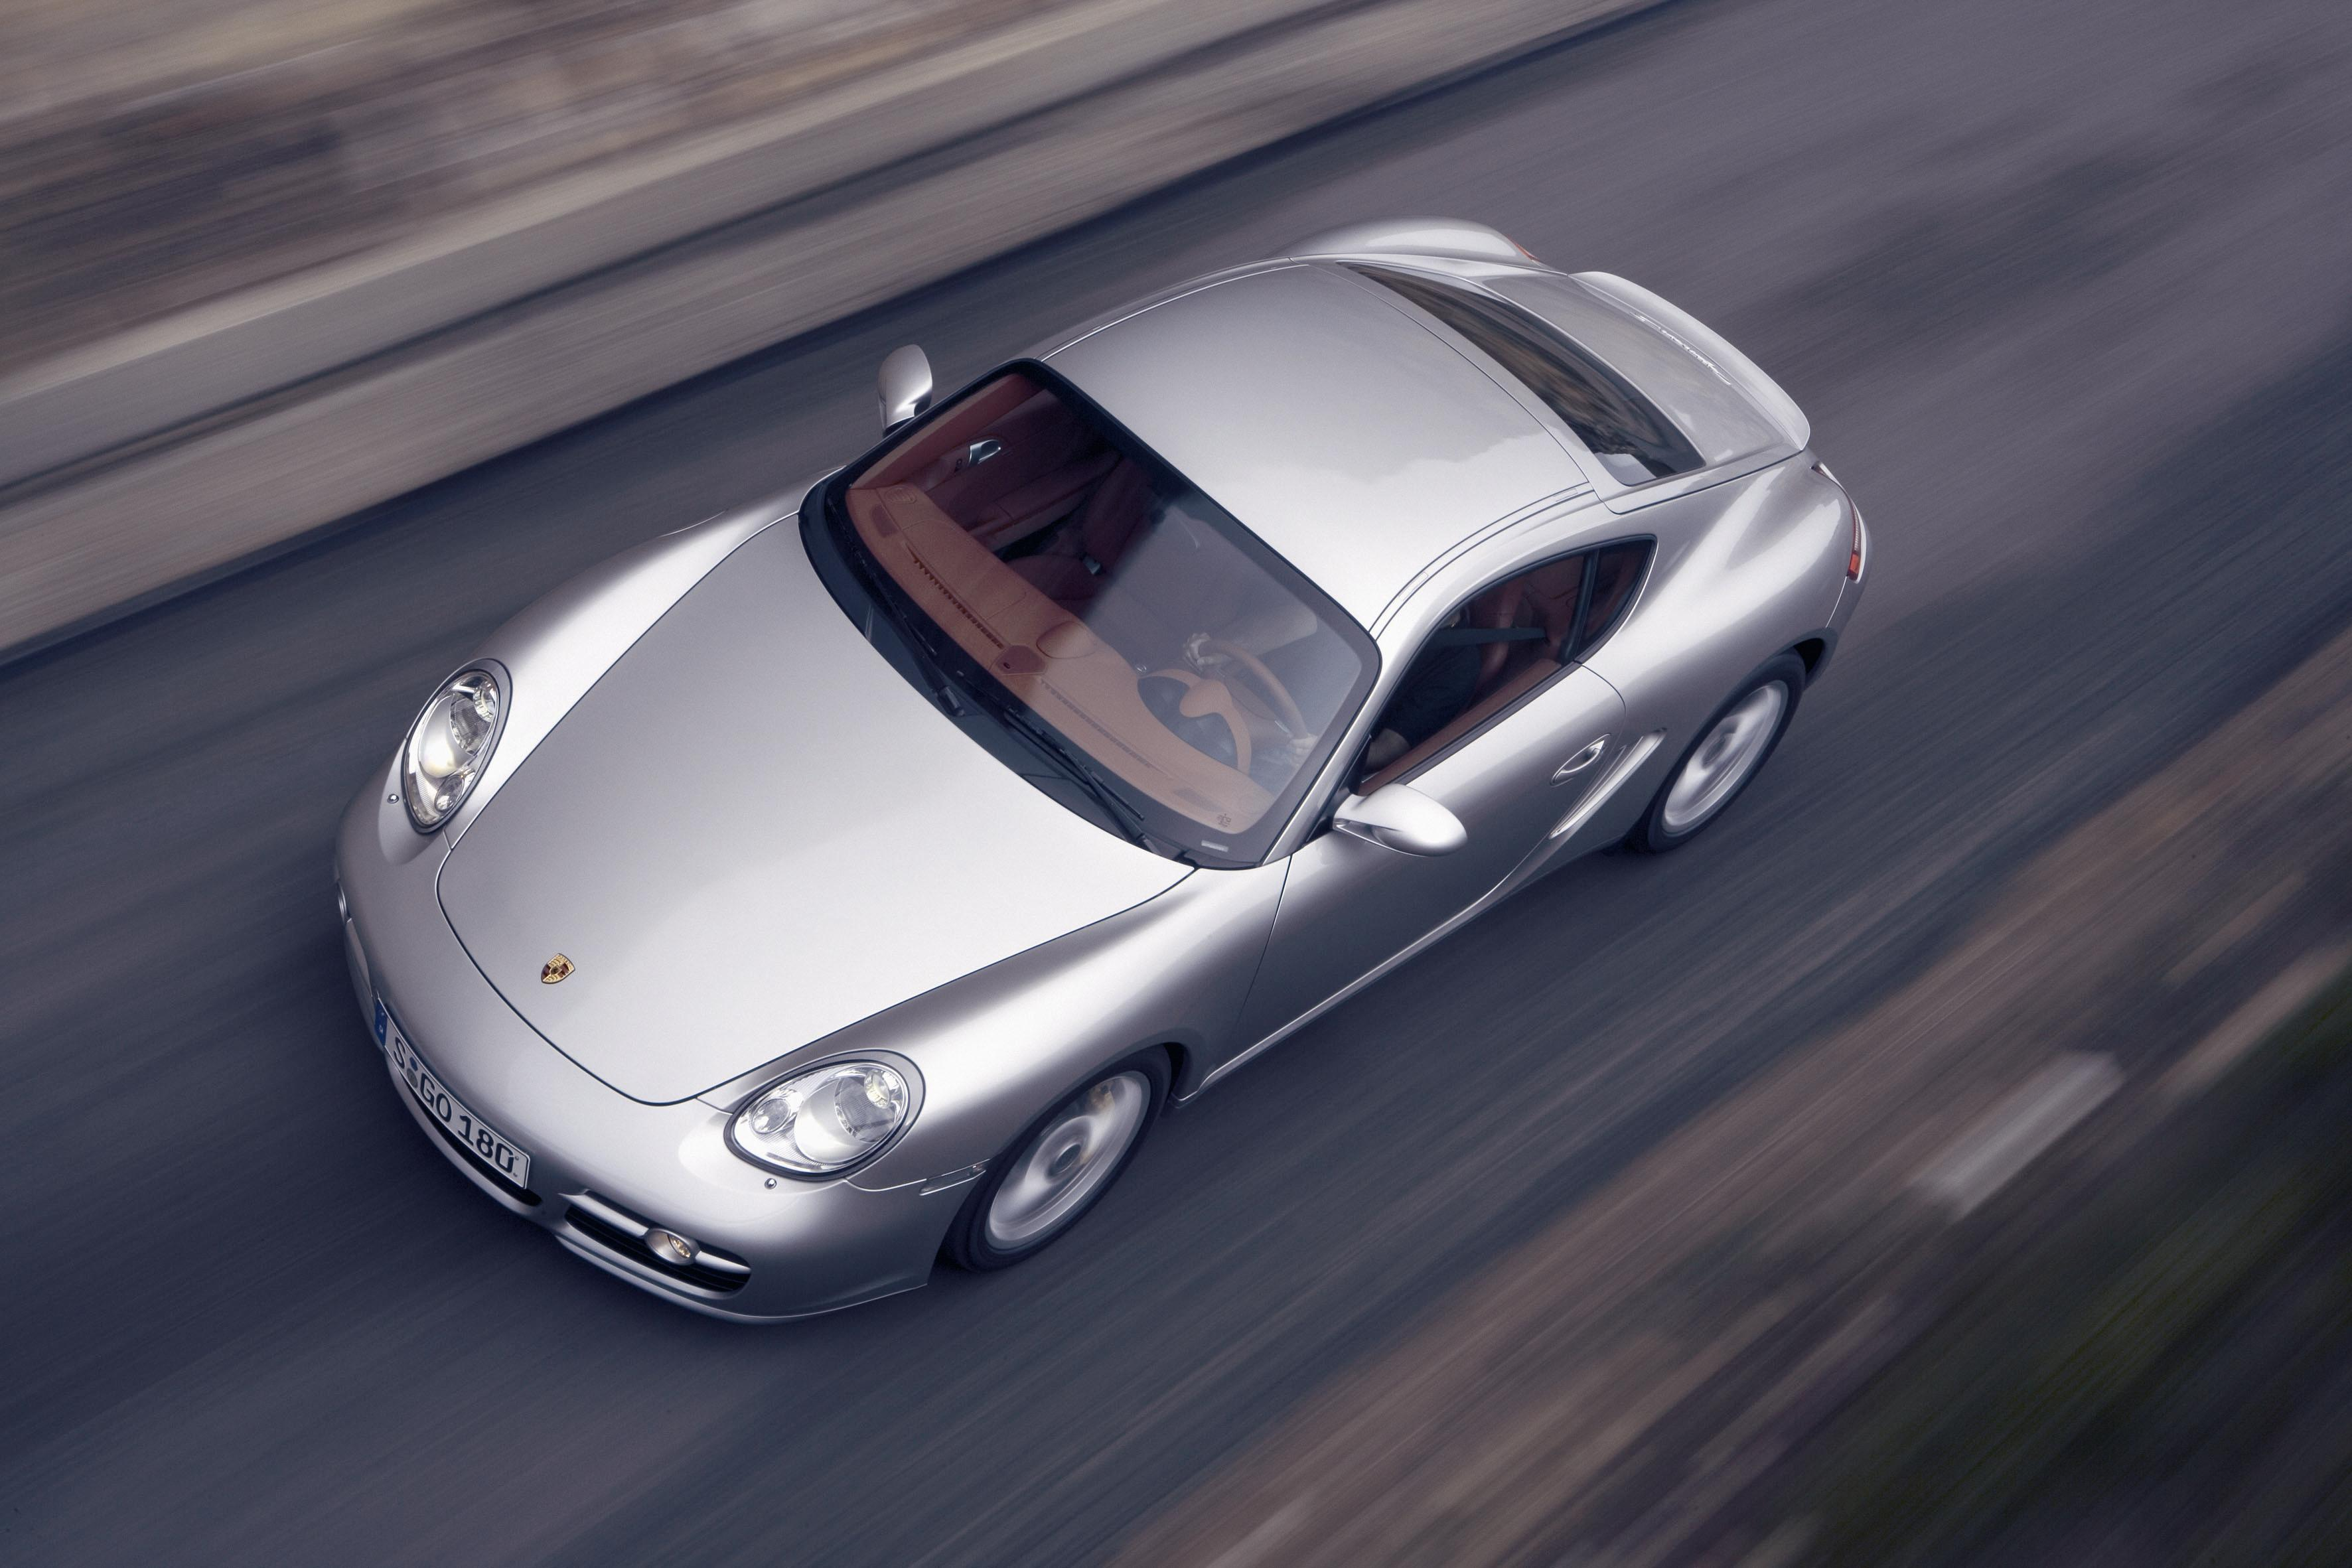 2006 Porsche Cayman S Top Speed